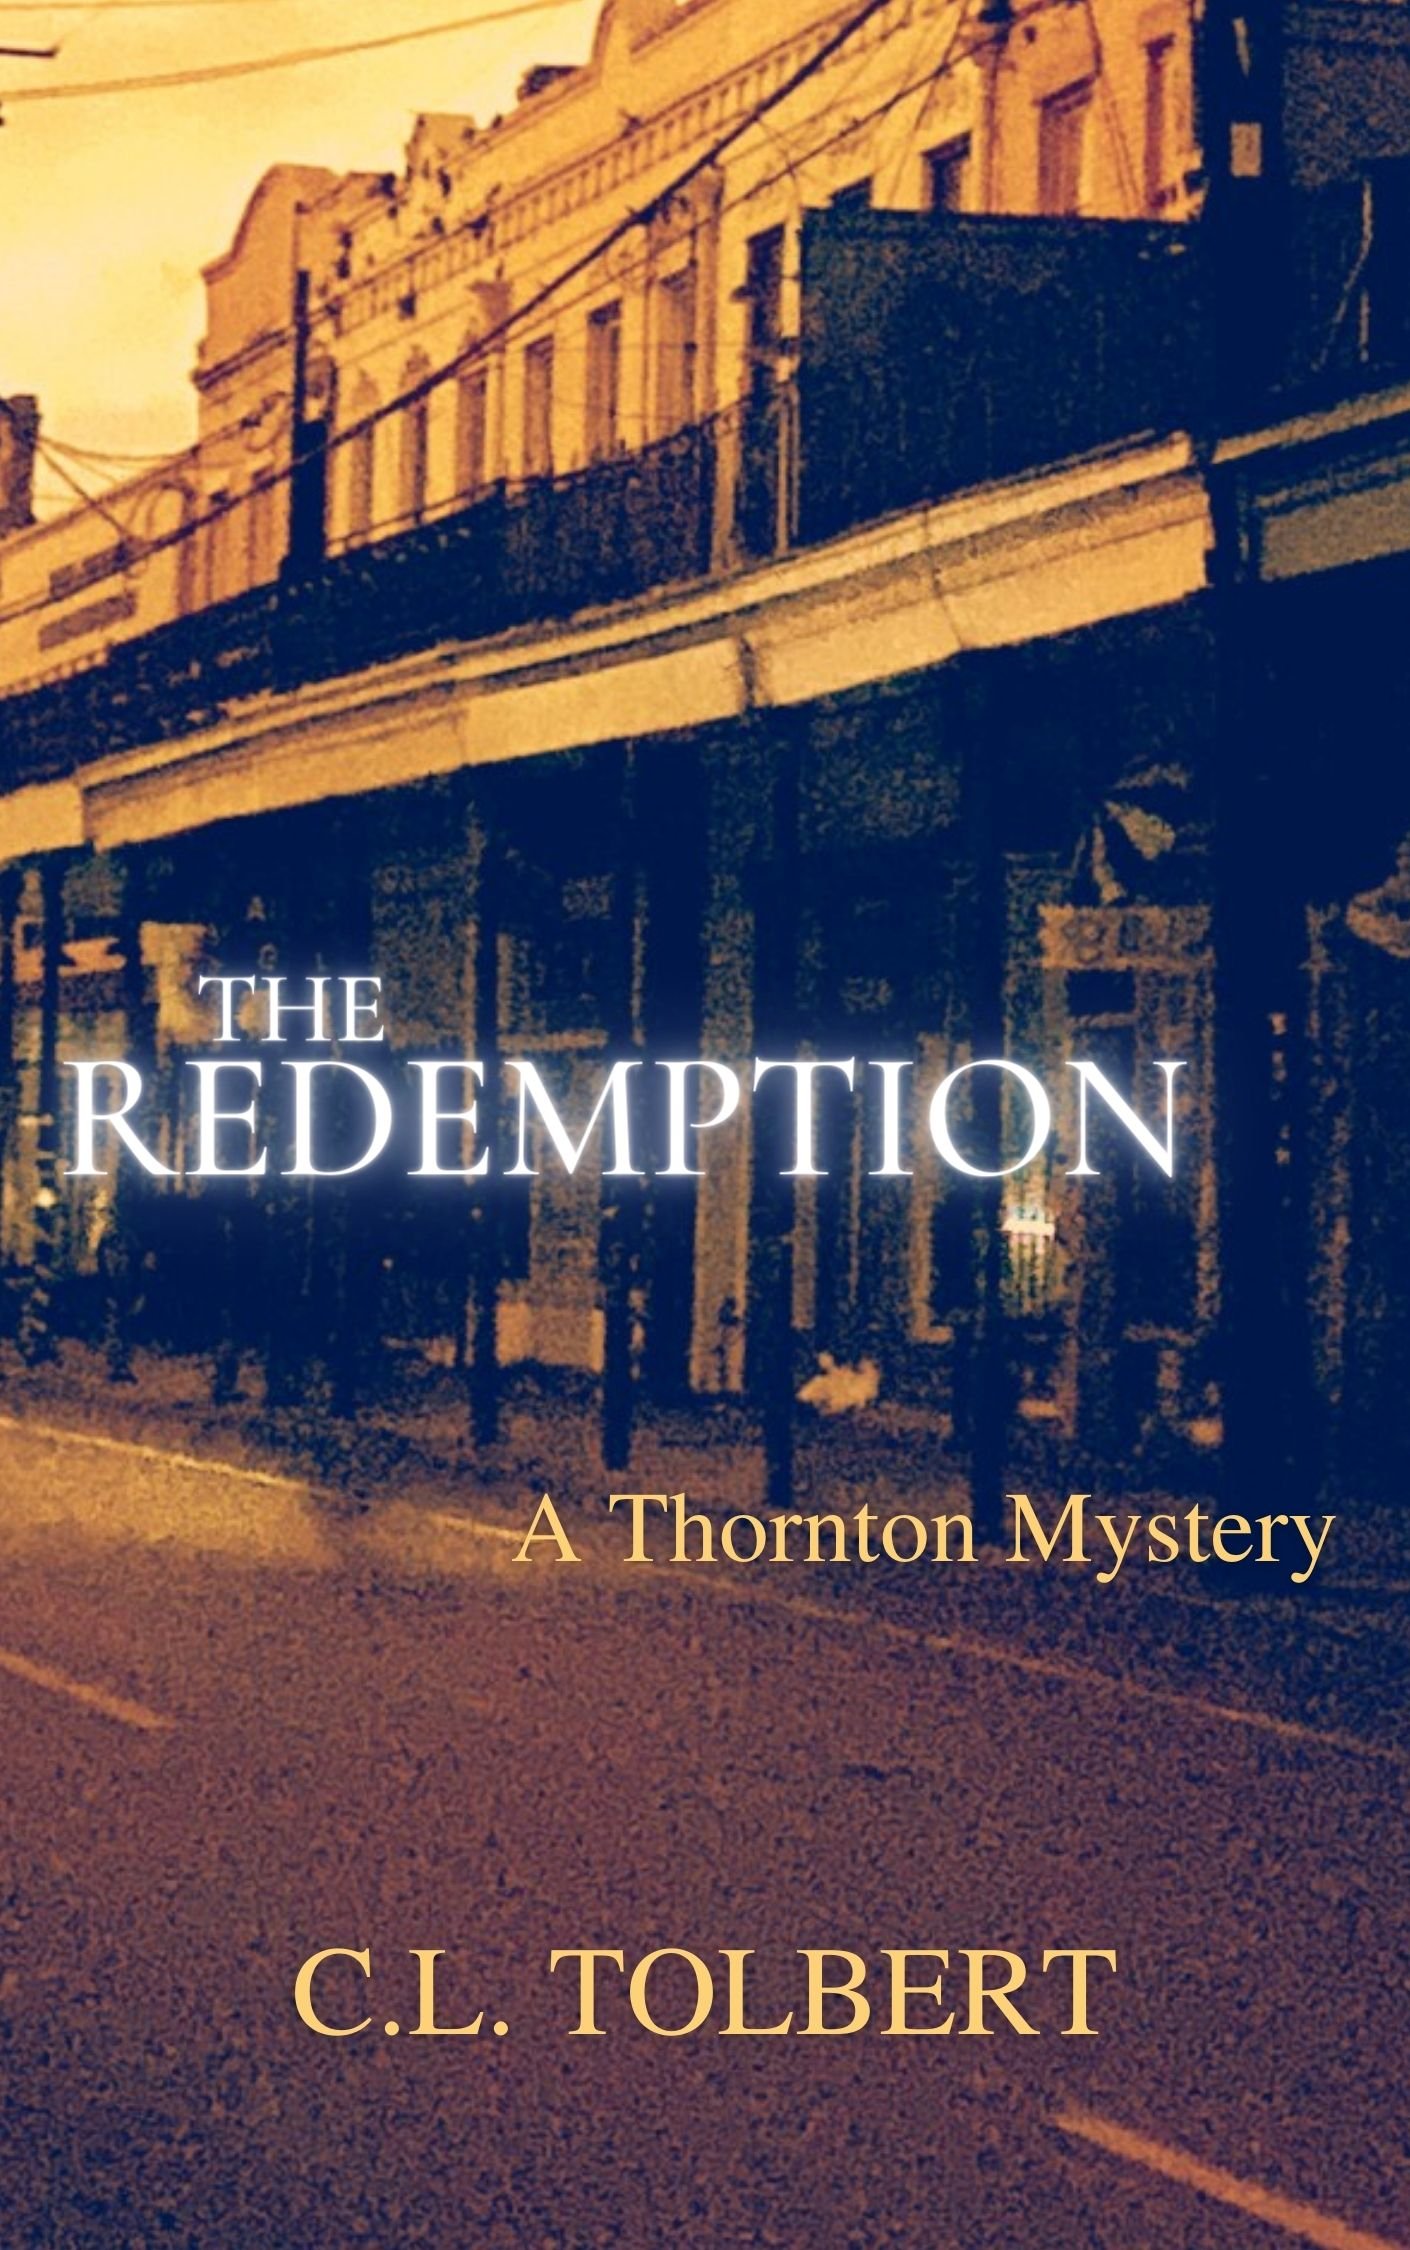 The Redemption by C.L. Tolbert